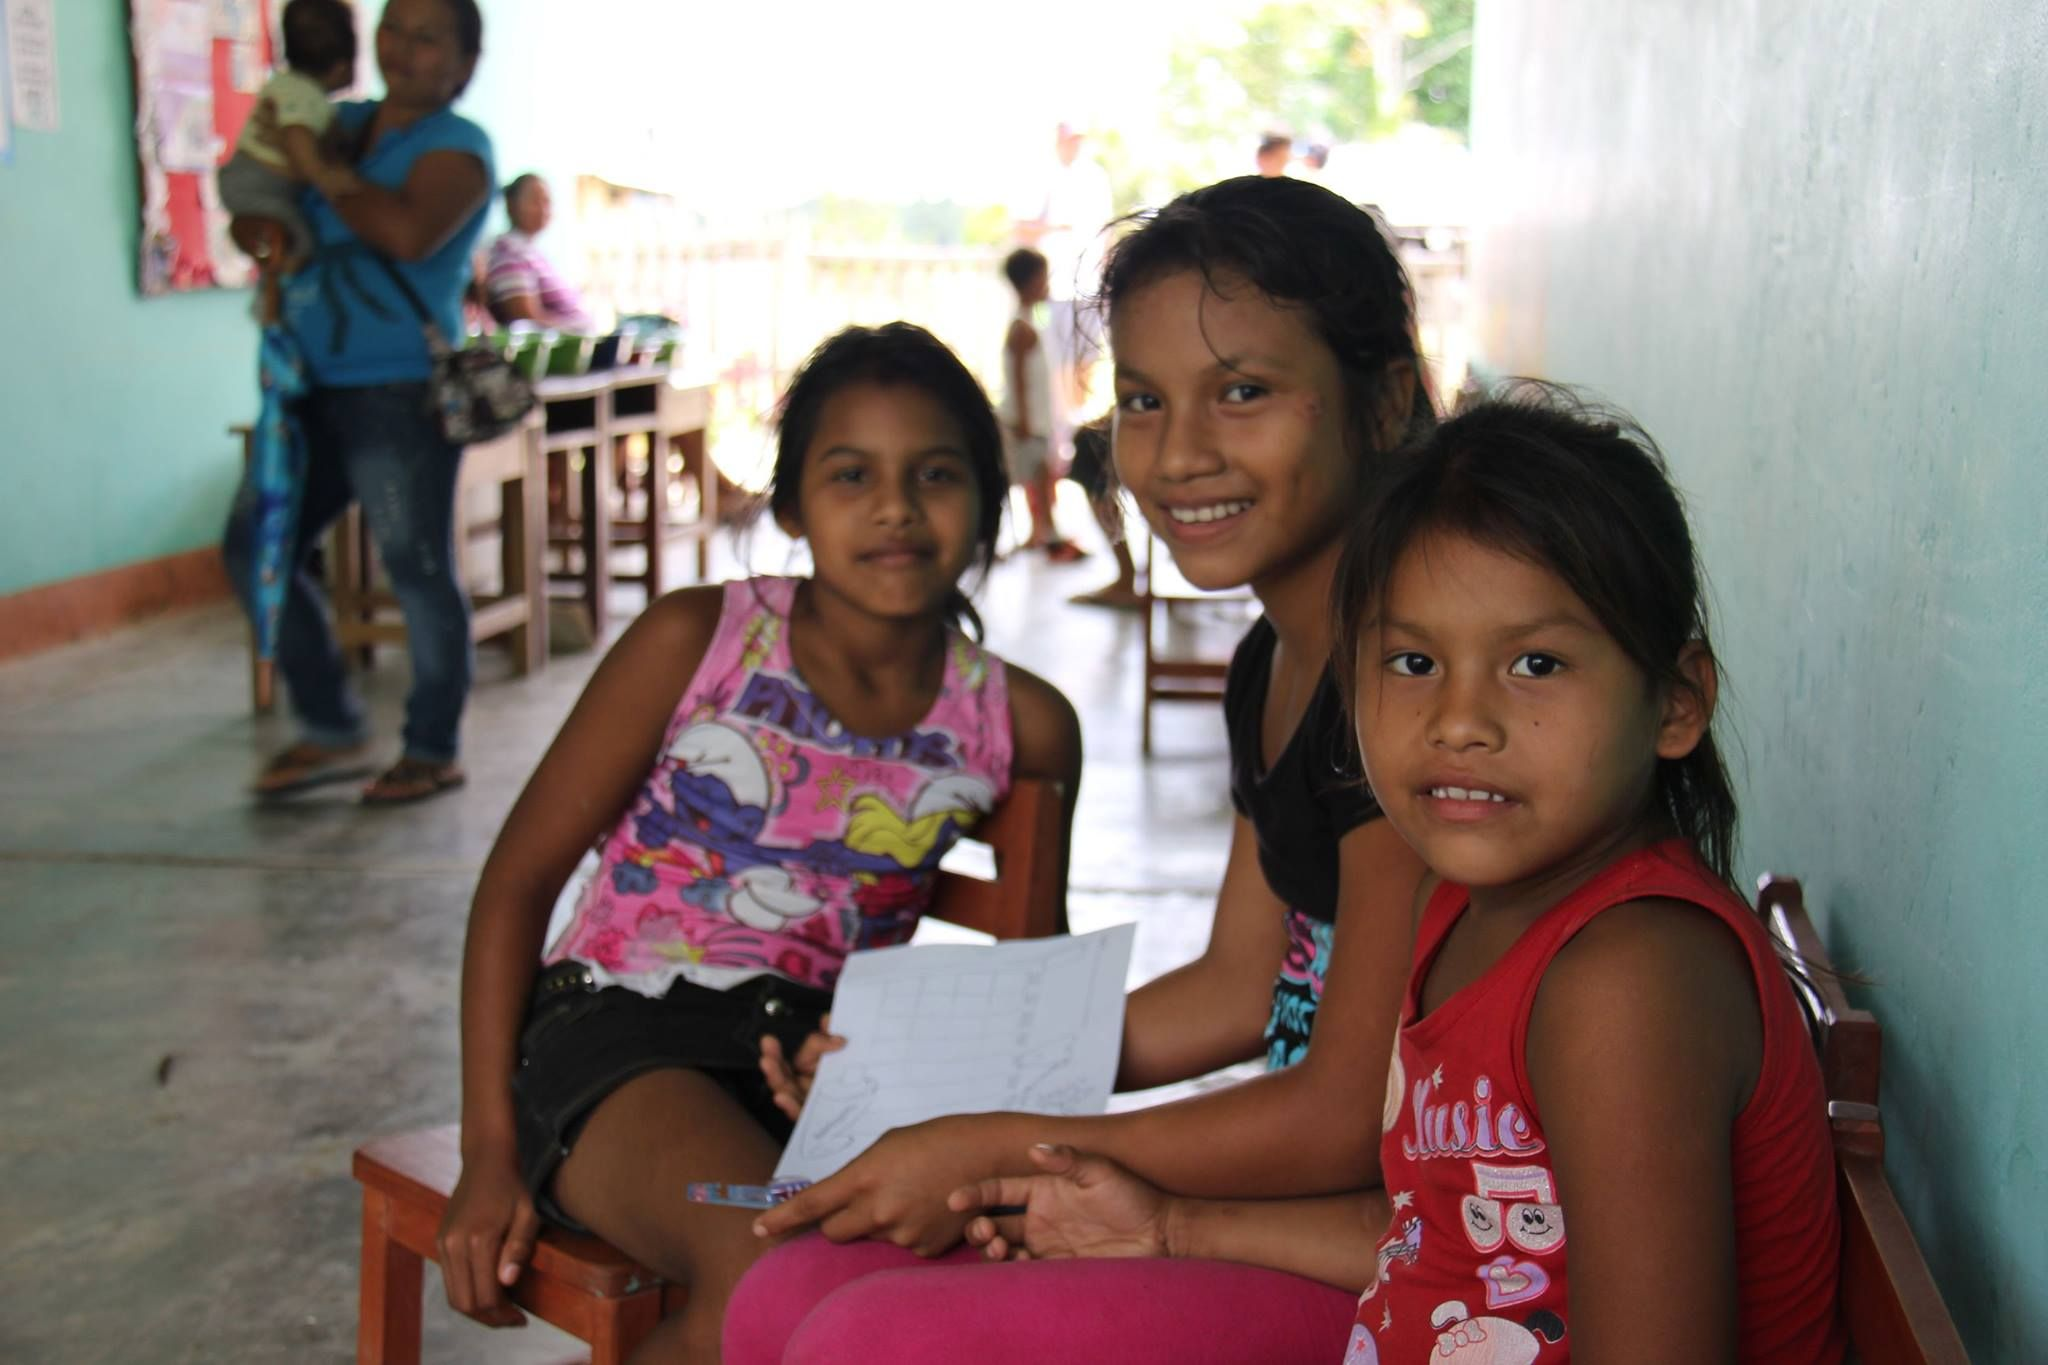 We want to see these young girls live to become healthy women